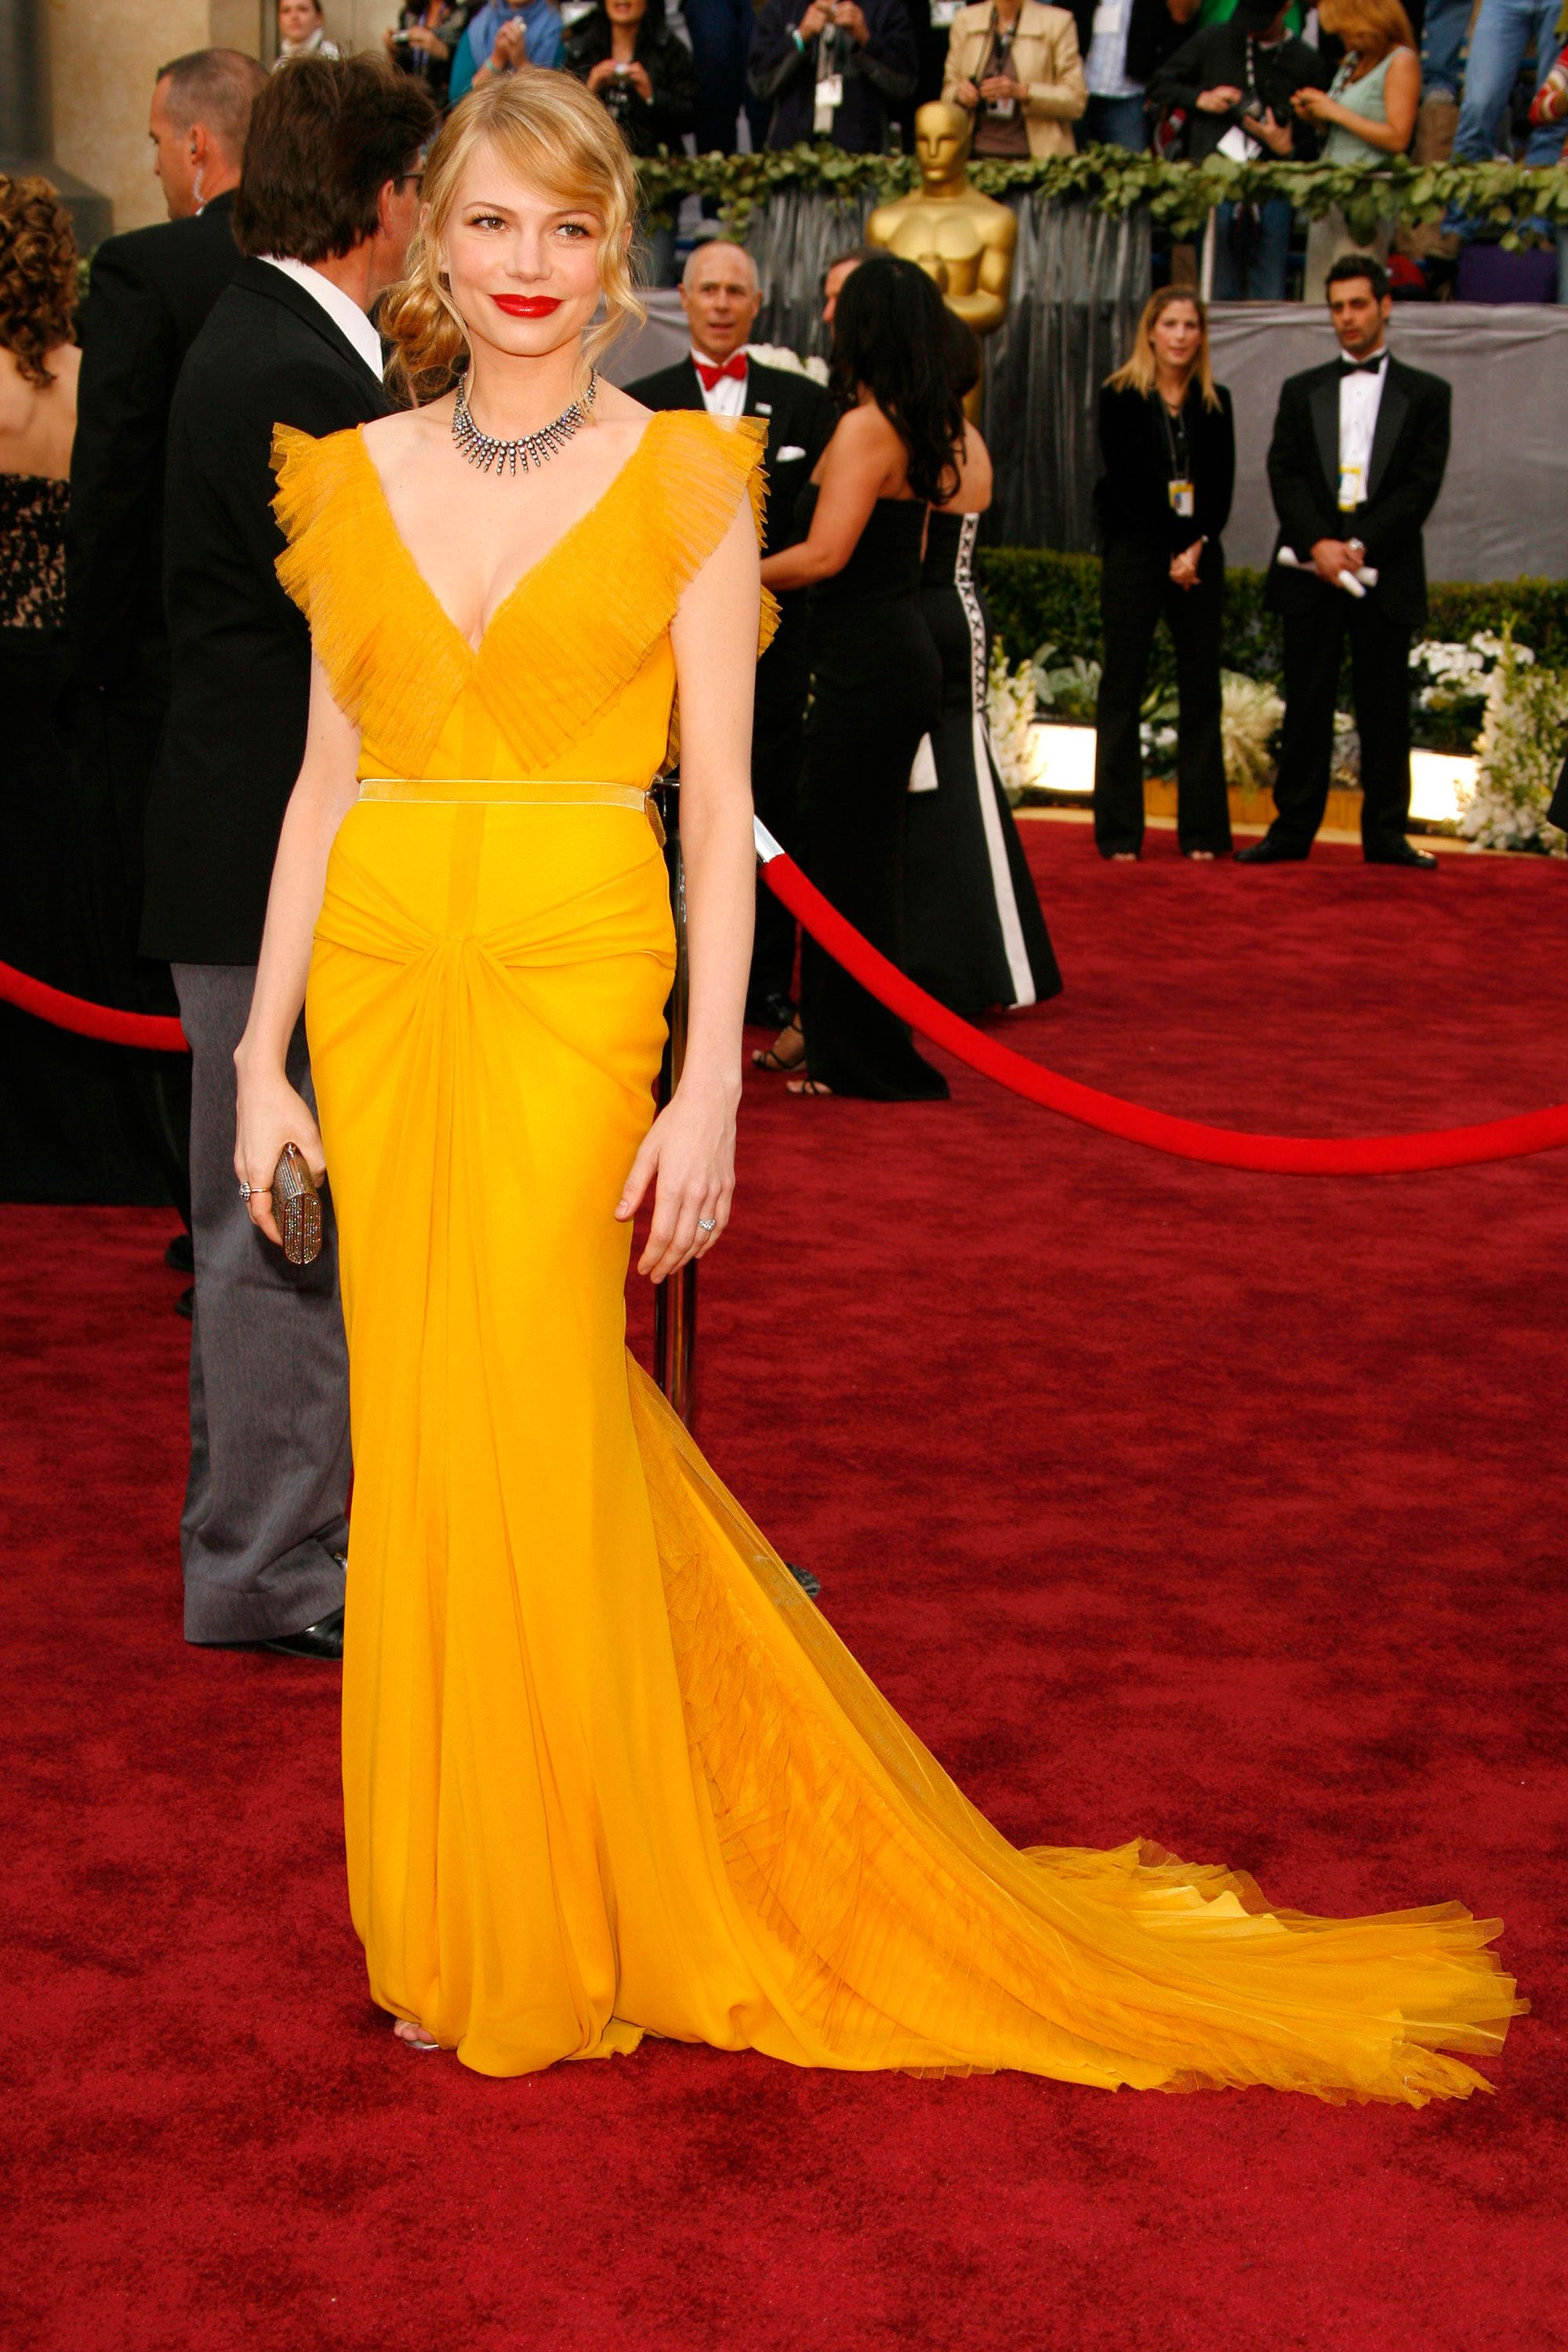 The Best Red Carpet Gowns Of All Time Best Oscar Dresses Oscars Red Carpet Dresses Oscar Dresses